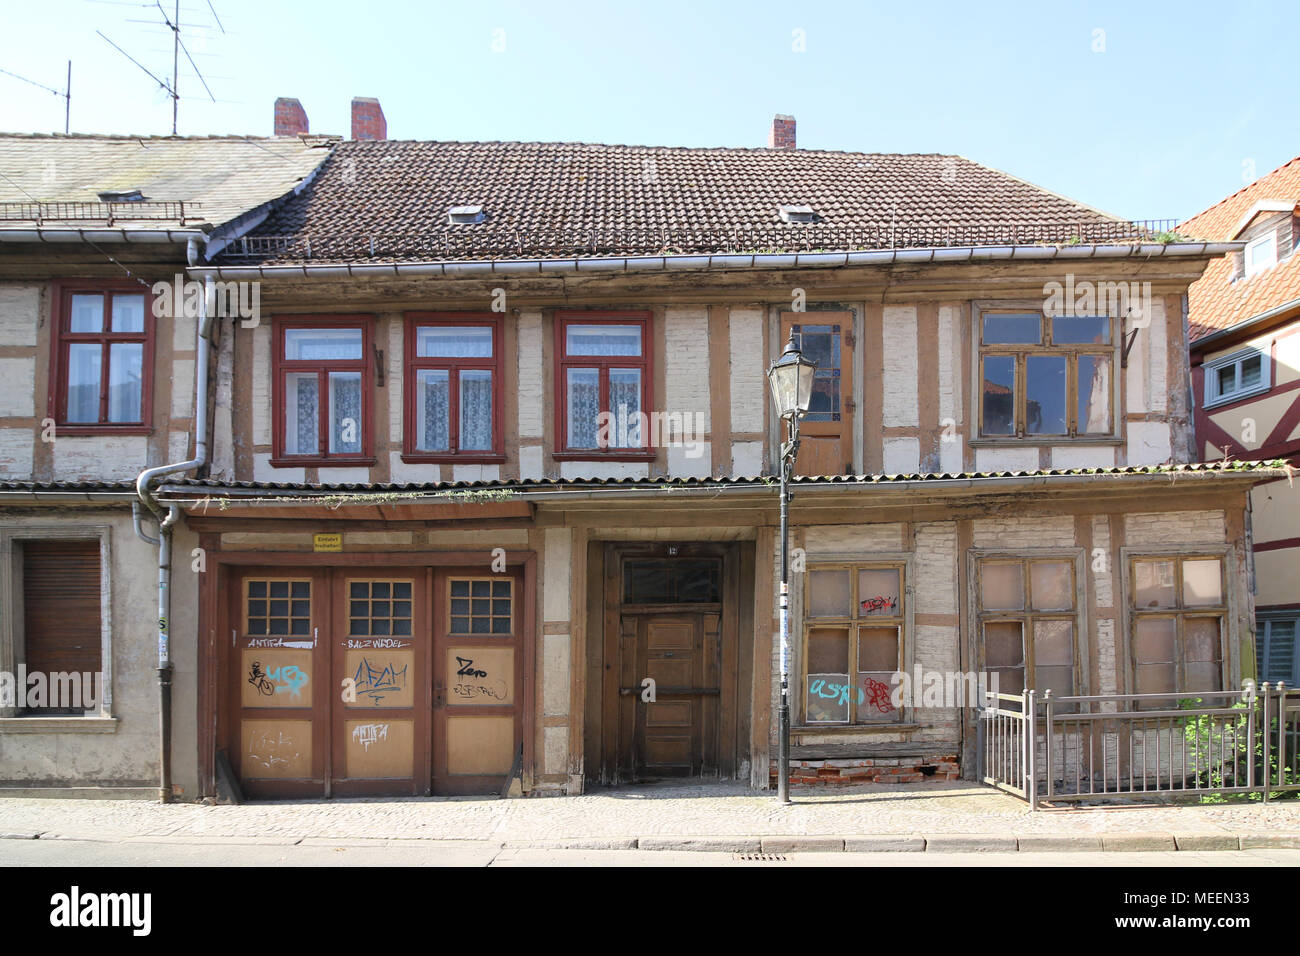 Salzwedel, Germany - April 21, 2018: View of a dilapidated half-timbered house in the Hanseatic city of Salzwedel, Germany. Stock Photo